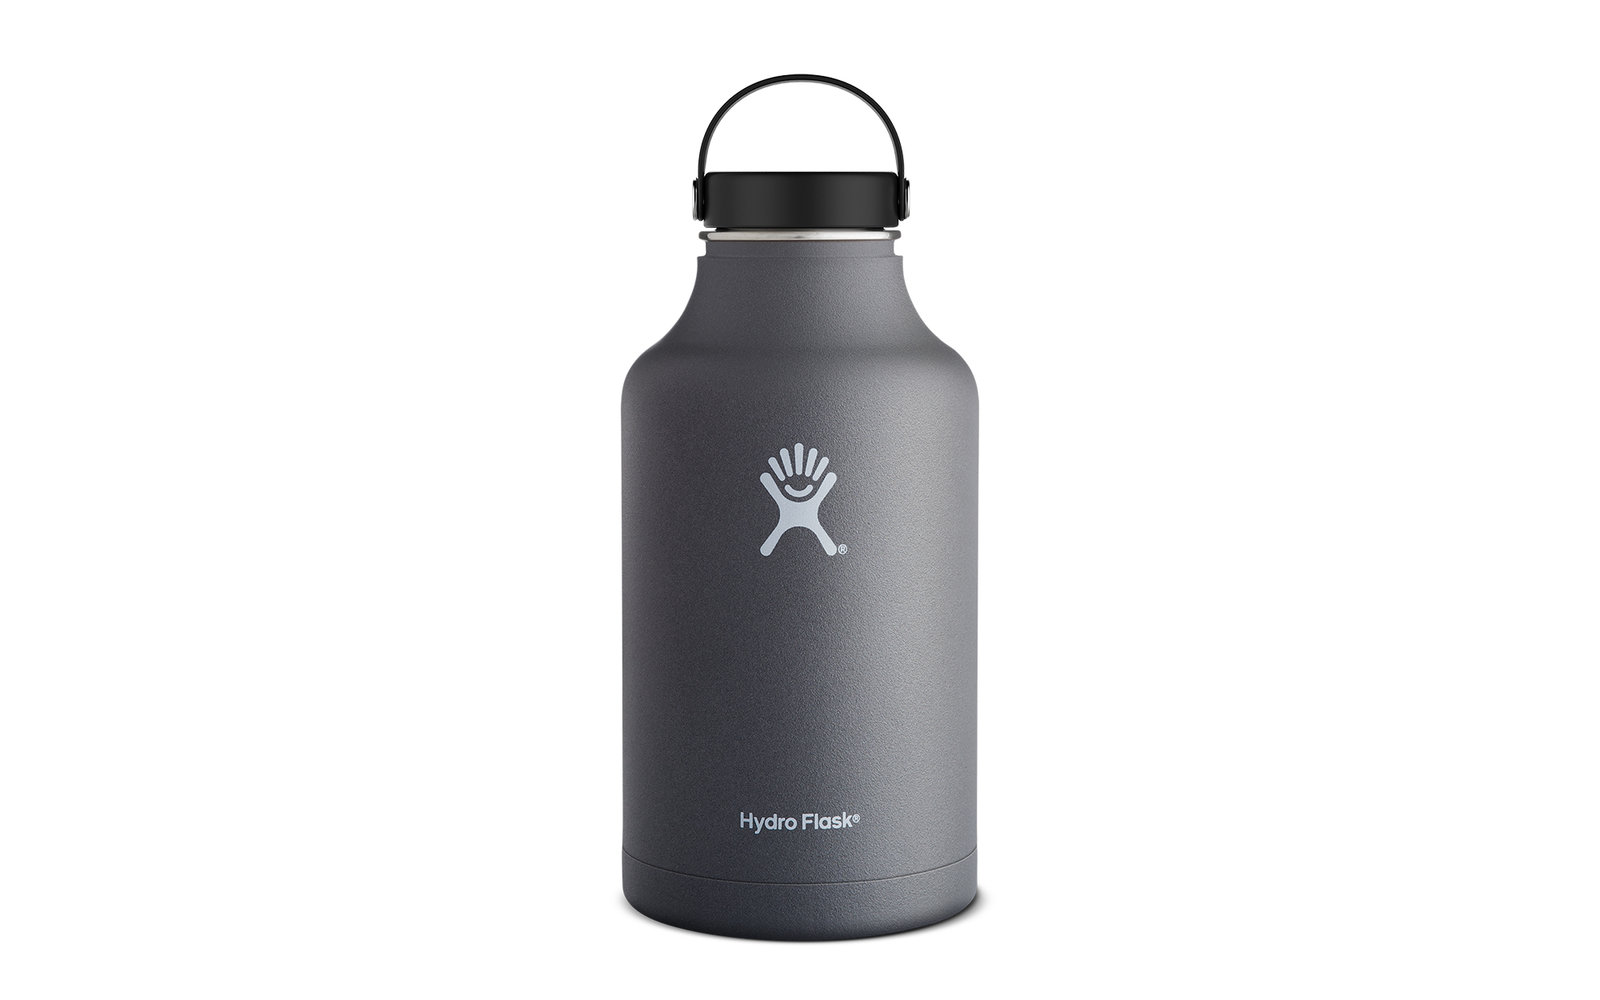 Hydro Flask Camping Gear